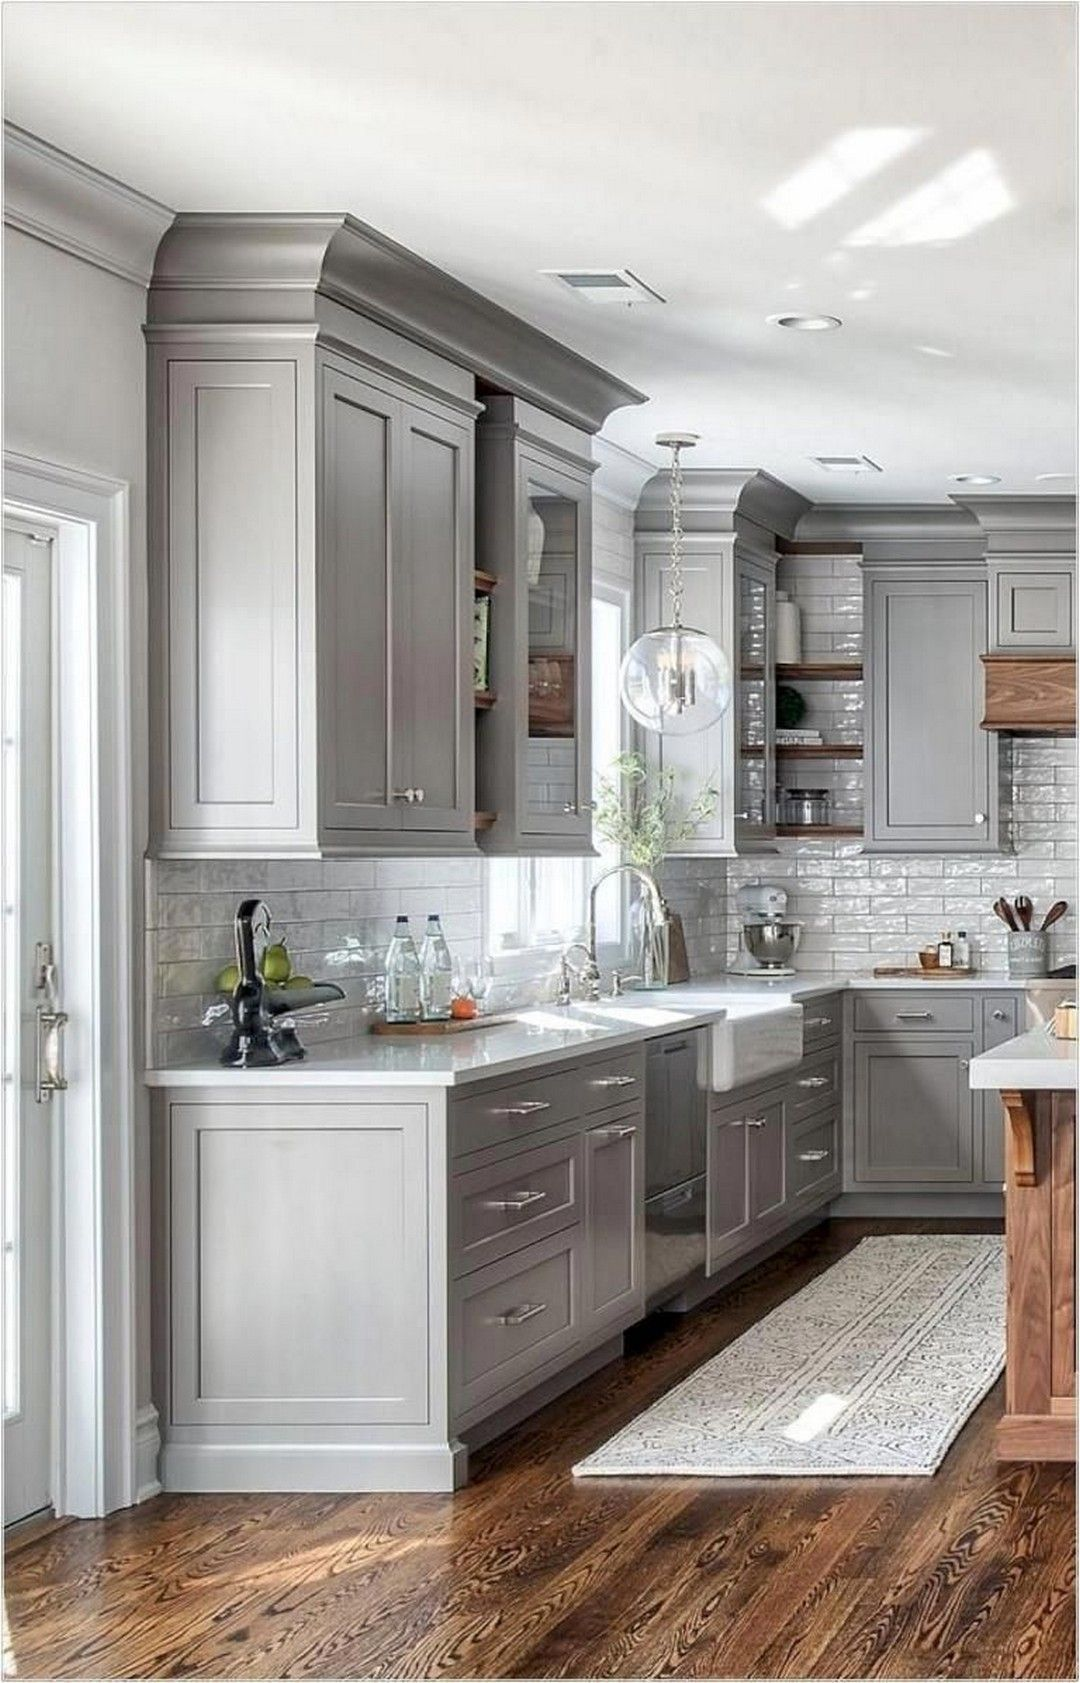 The Best Farmhouse Kitchen Cabinets Design Ideas 34